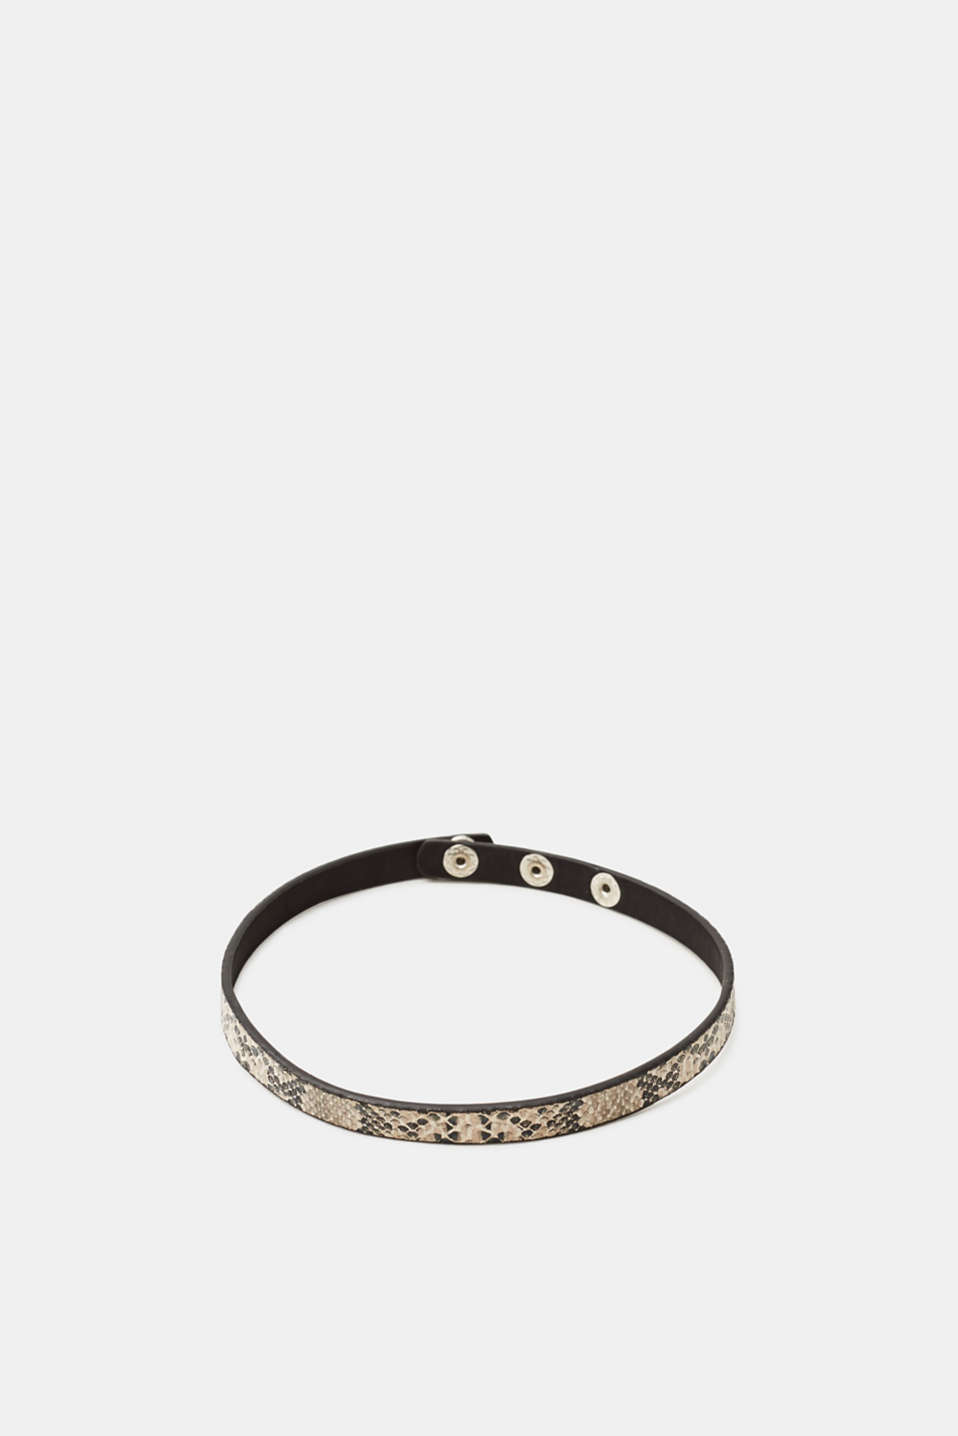 Trend: Chokers! This choker impresses with its cool python look.